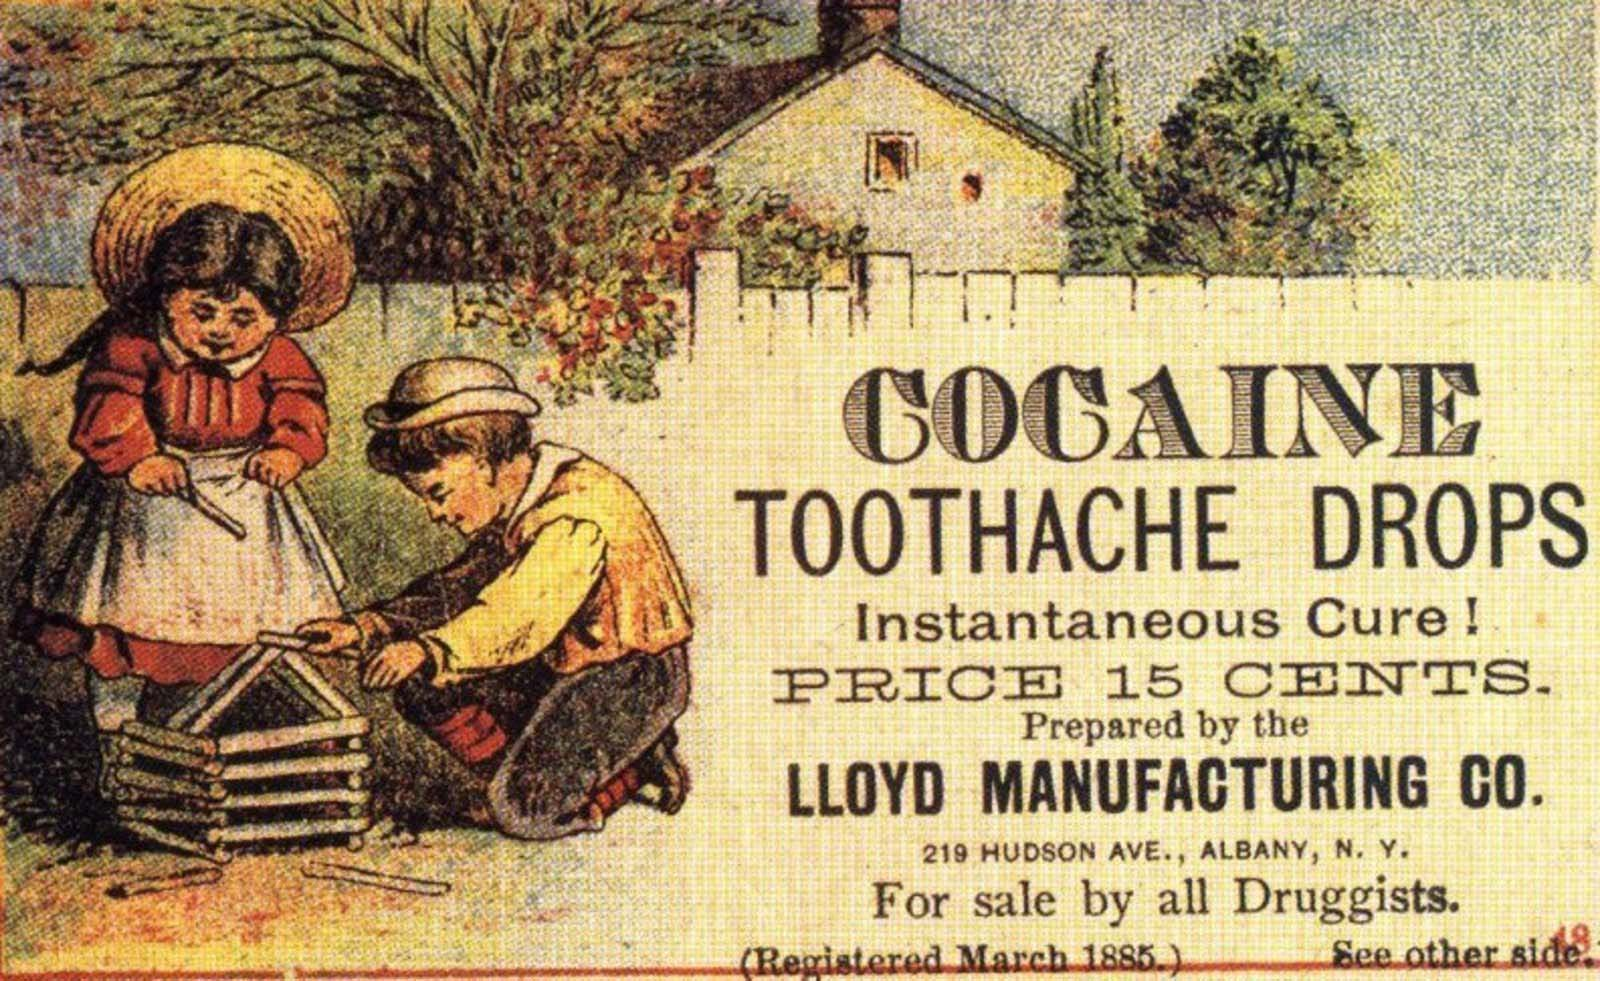 Nothing like treating that tooth pain with a little cocaine addiction.